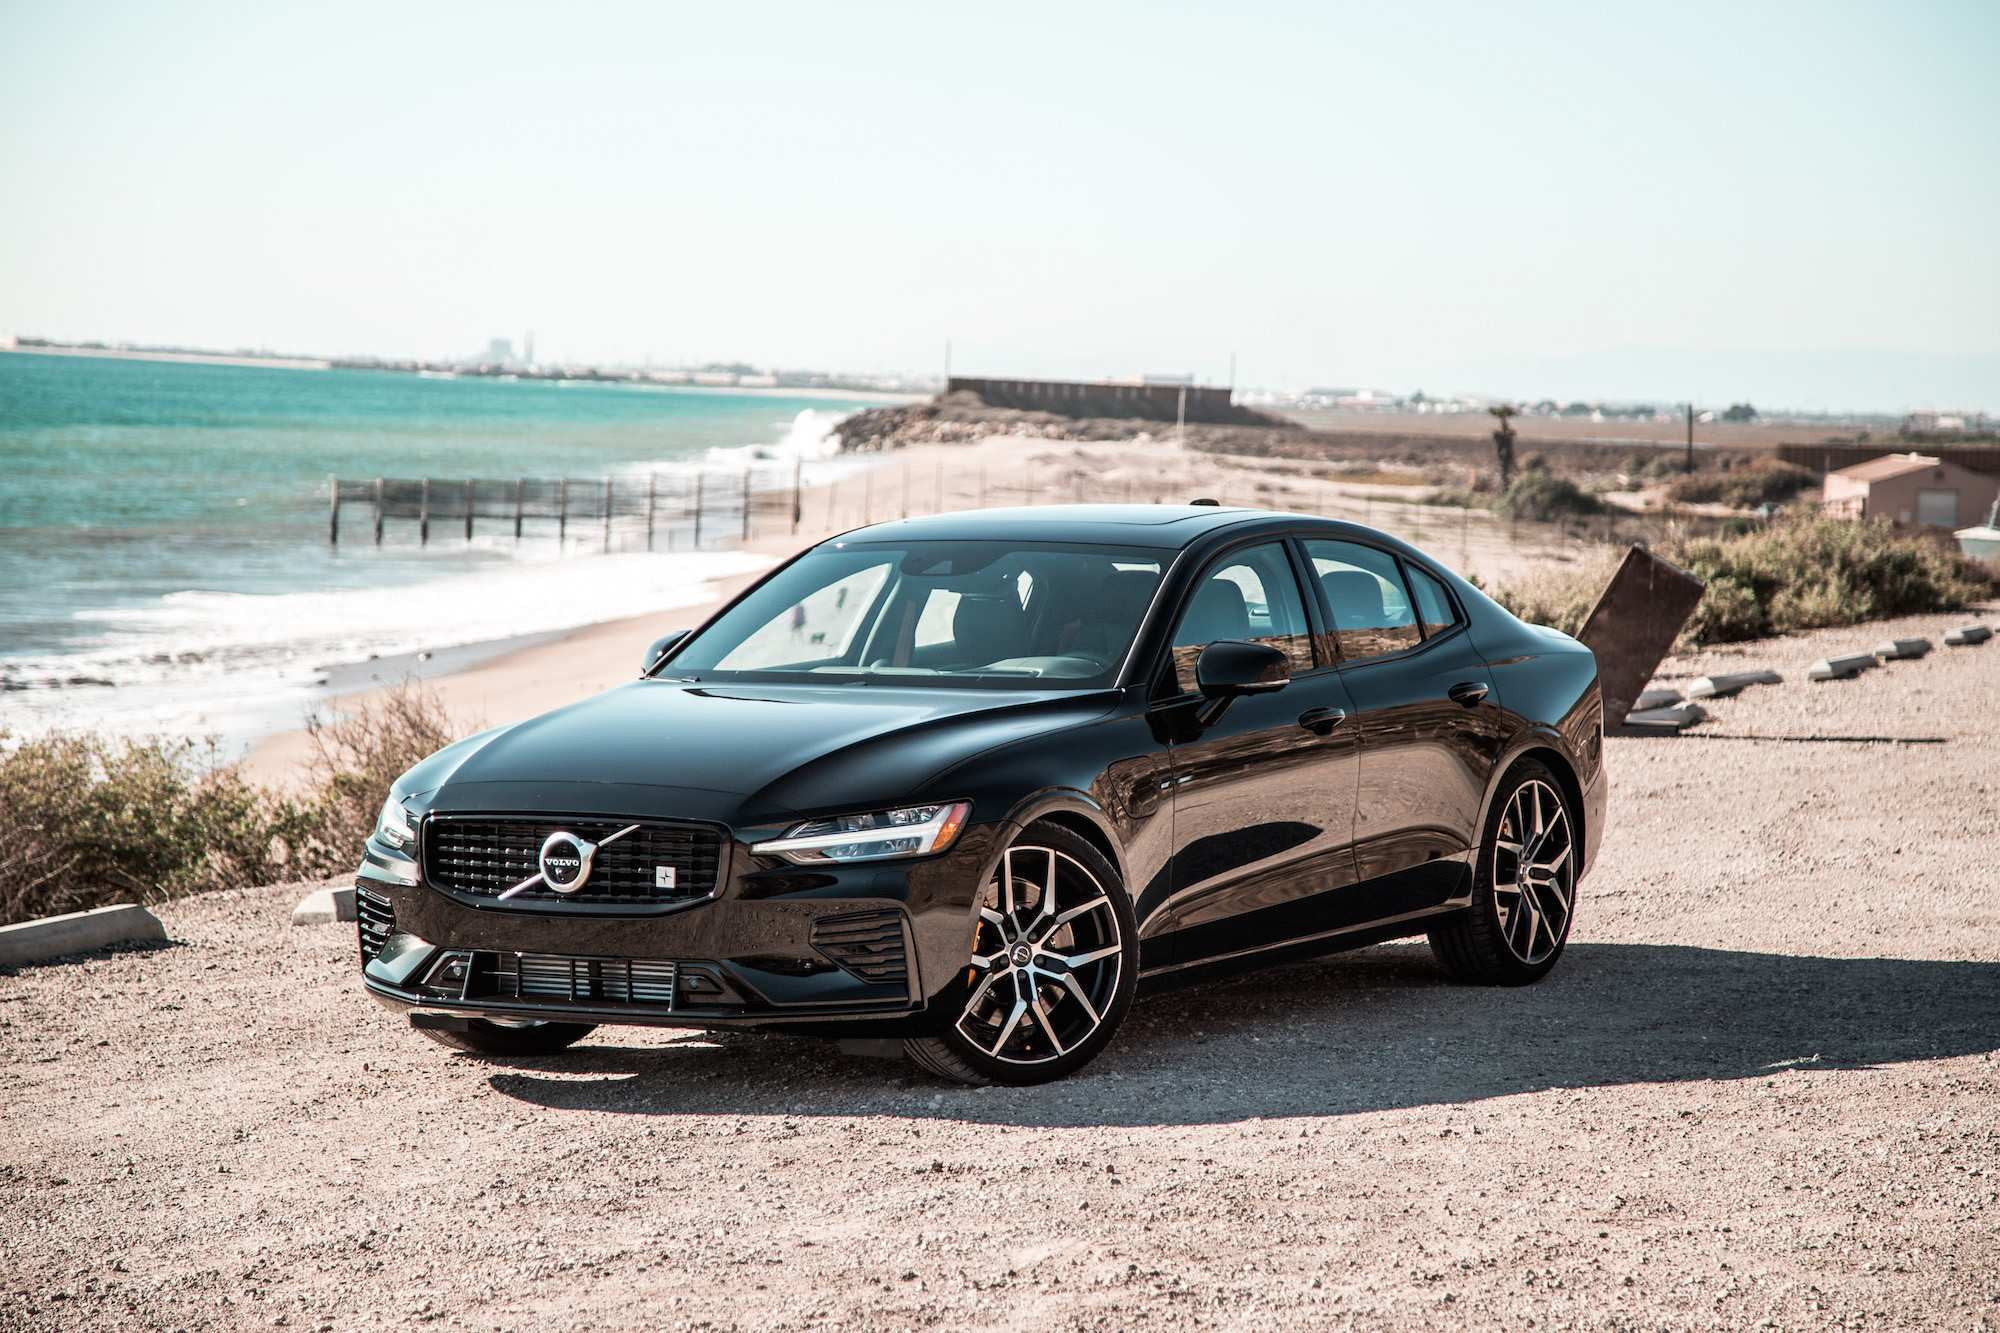 80 Best Review Volvo S60 Polestar 2020 Exterior and Interior with Volvo S60 Polestar 2020